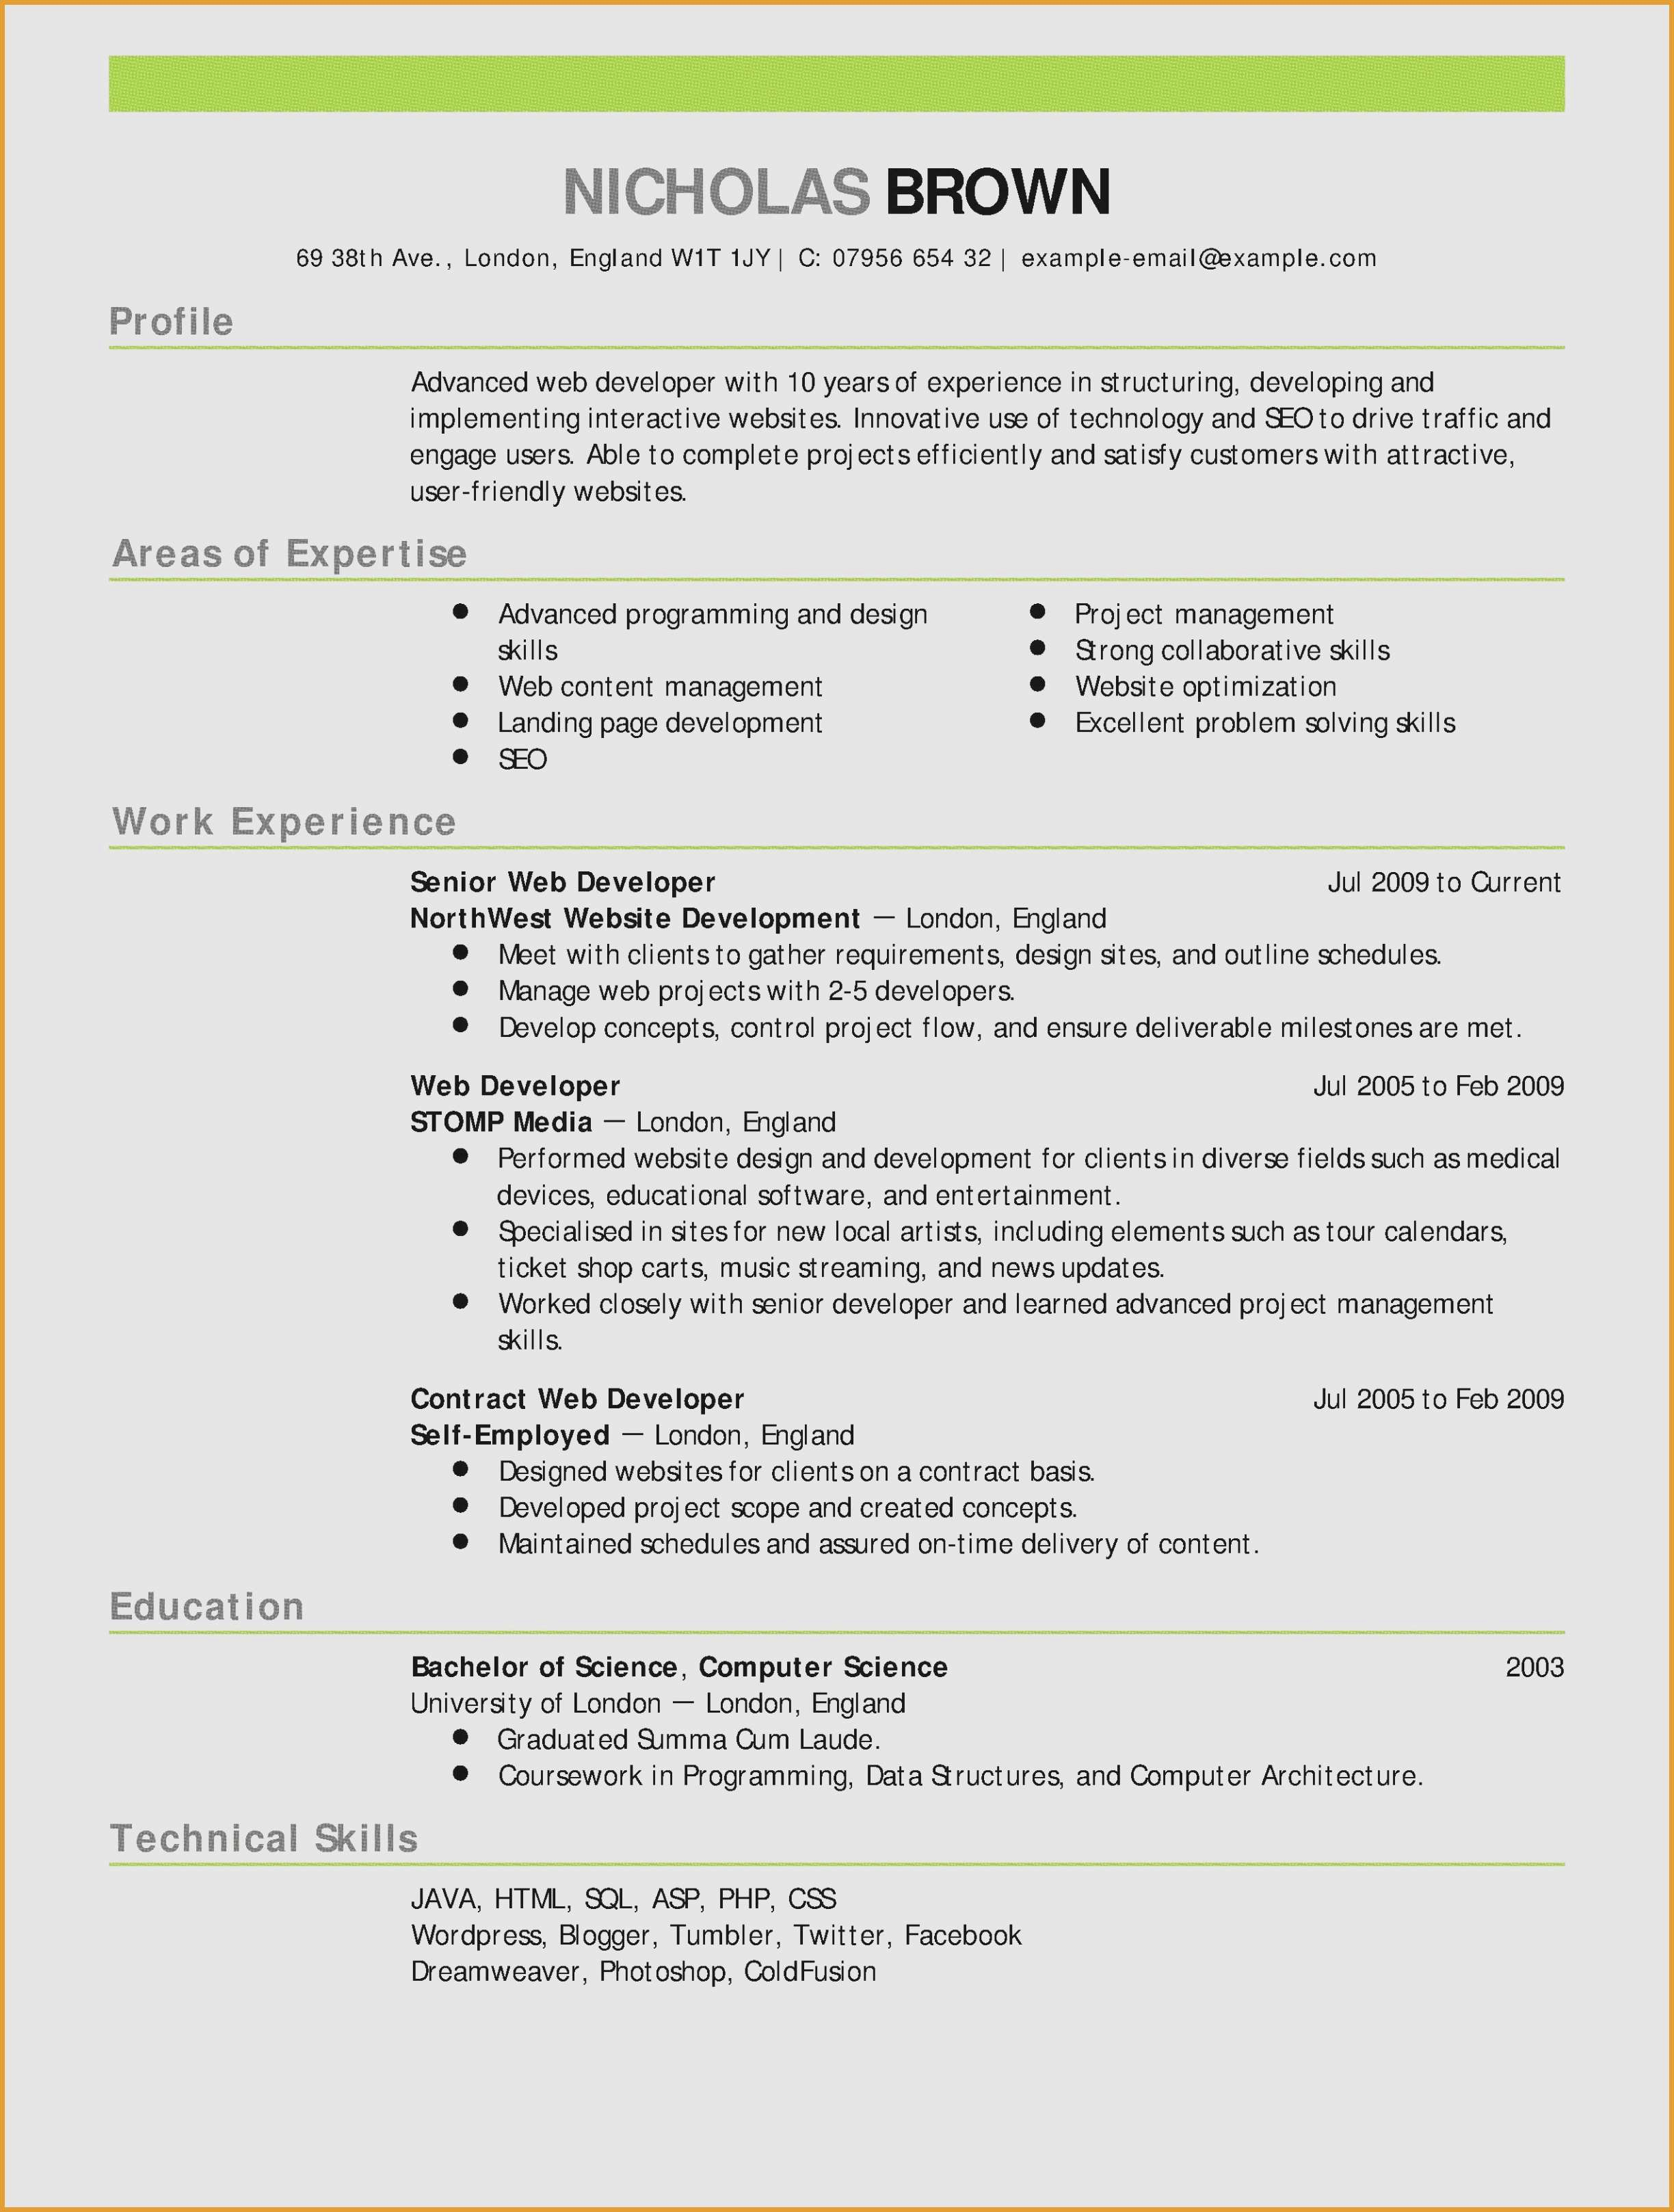 Bartending Duties On Resume - Resume for A Server Server Skills Resume Fresh Skills for A Resume